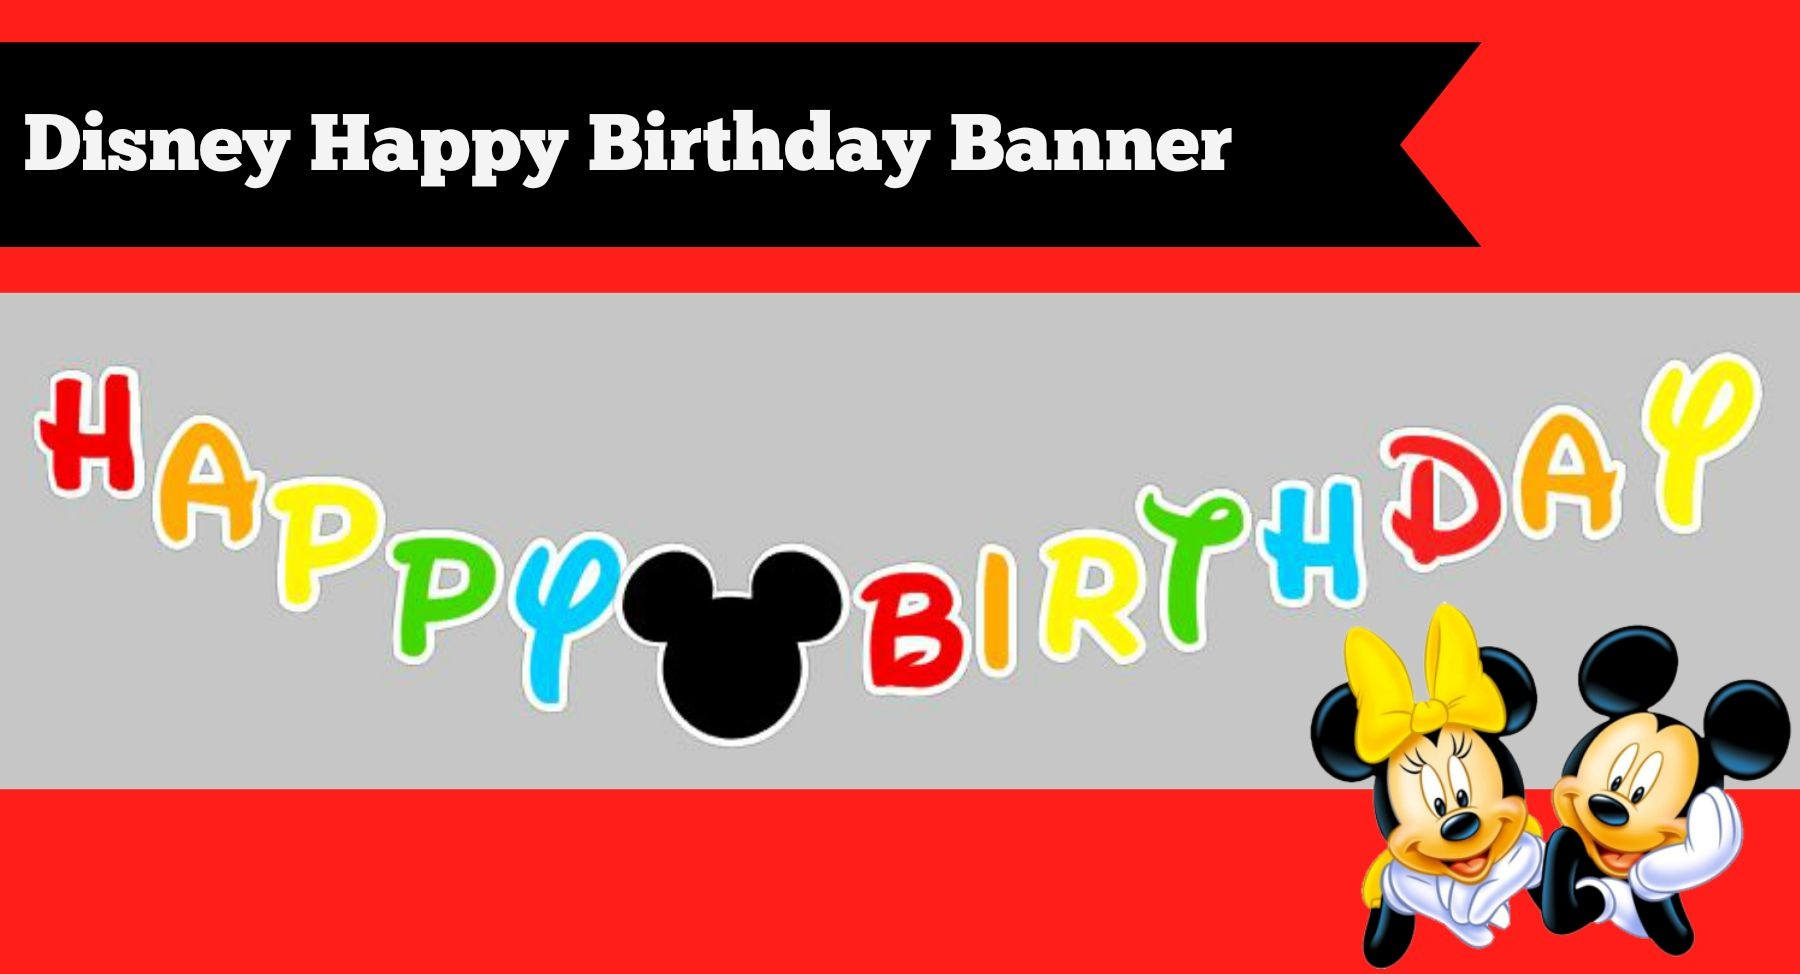 How To Make A Diy Mickey Mouse Clubhouse Inspired Happy Birthday - Free Printable Mickey Mouse Birthday Banner